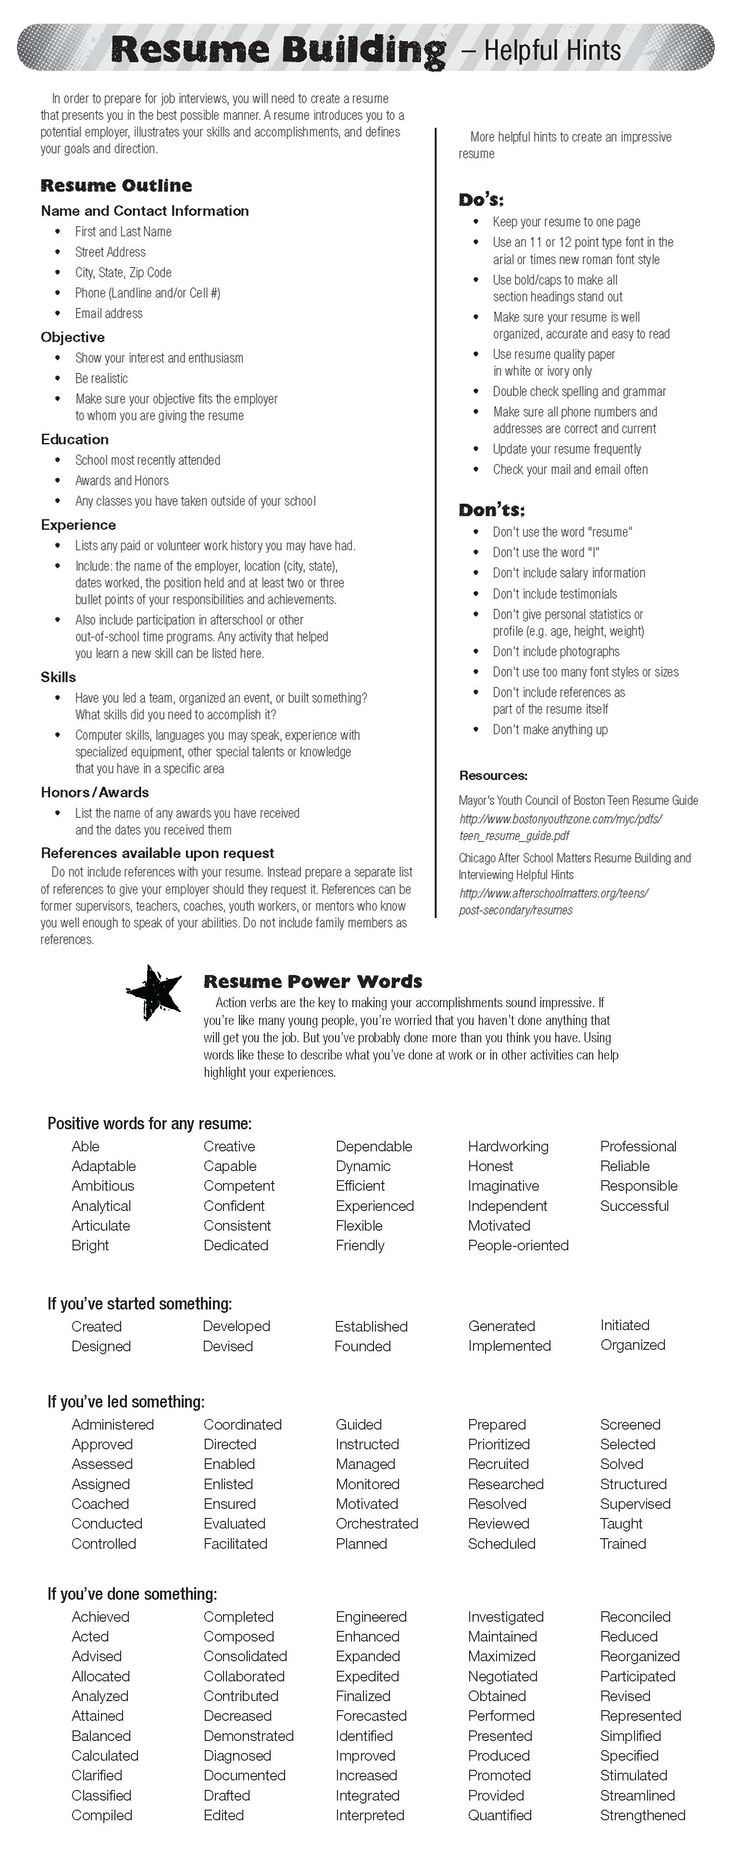 Opposenewapstandardsus  Picturesque  Ideas About Resume On Pinterest  Cv Format Resume Cv And  With Lovely  Ideas About Resume On Pinterest  Cv Format Resume Cv And Resume Templates With Comely Game Developer Resume Also Images Of Resume In Addition How To Set Up A Resume On Word And Cook Resumes As Well As Resume For Medical Field Additionally Sample Resume For Teenager From Pinterestcom With Opposenewapstandardsus  Lovely  Ideas About Resume On Pinterest  Cv Format Resume Cv And  With Comely  Ideas About Resume On Pinterest  Cv Format Resume Cv And Resume Templates And Picturesque Game Developer Resume Also Images Of Resume In Addition How To Set Up A Resume On Word From Pinterestcom